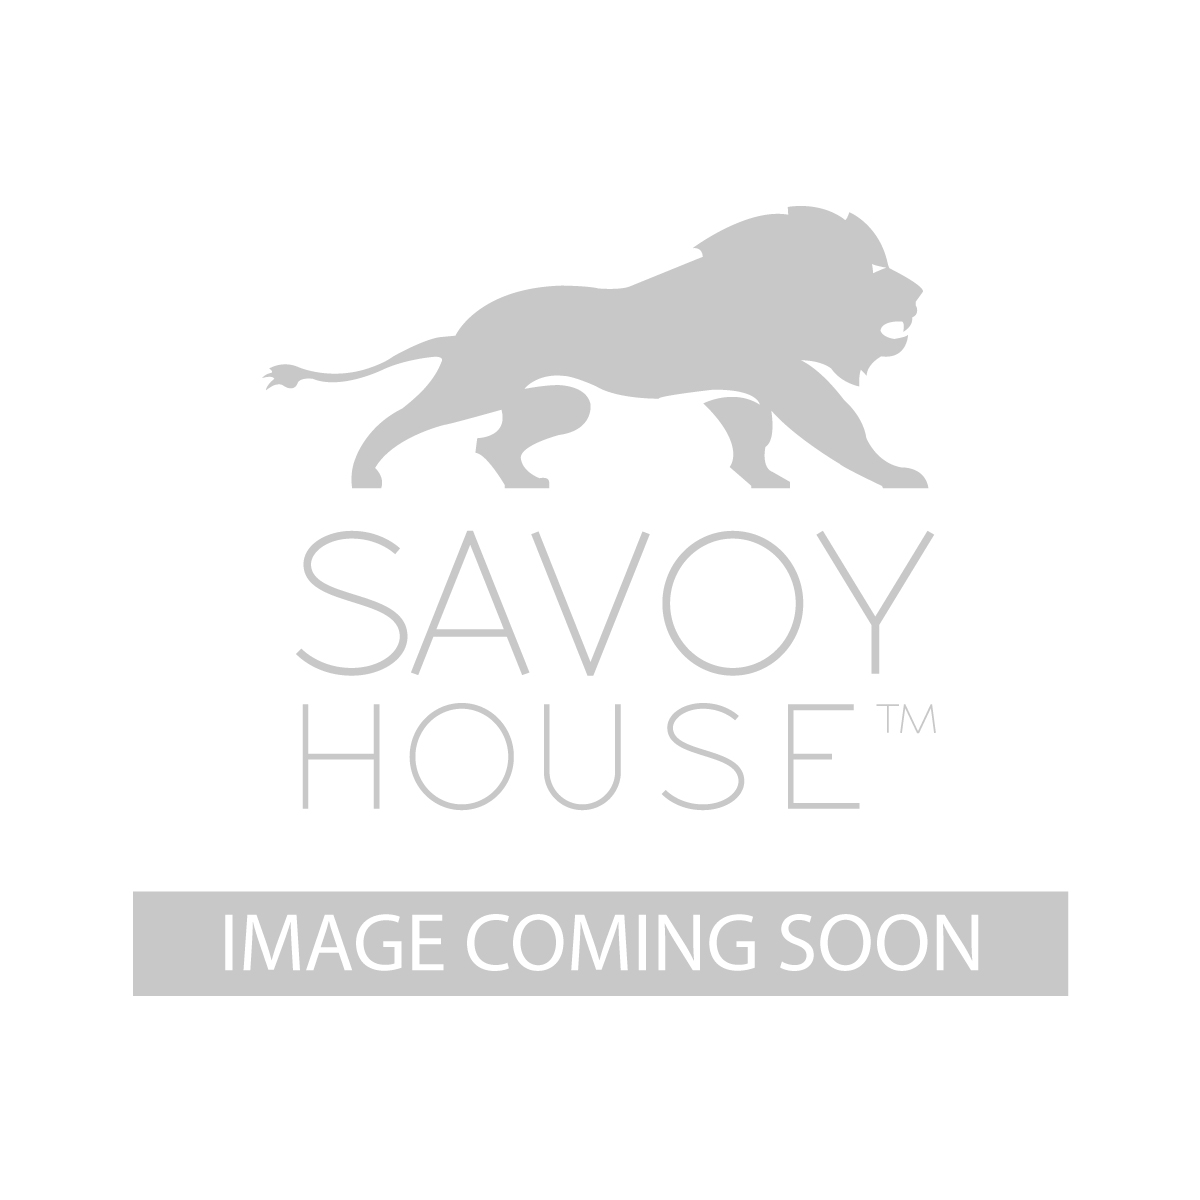 1 5152 12 32 maverick 12 light chandelier by savoy house for Savoy house com